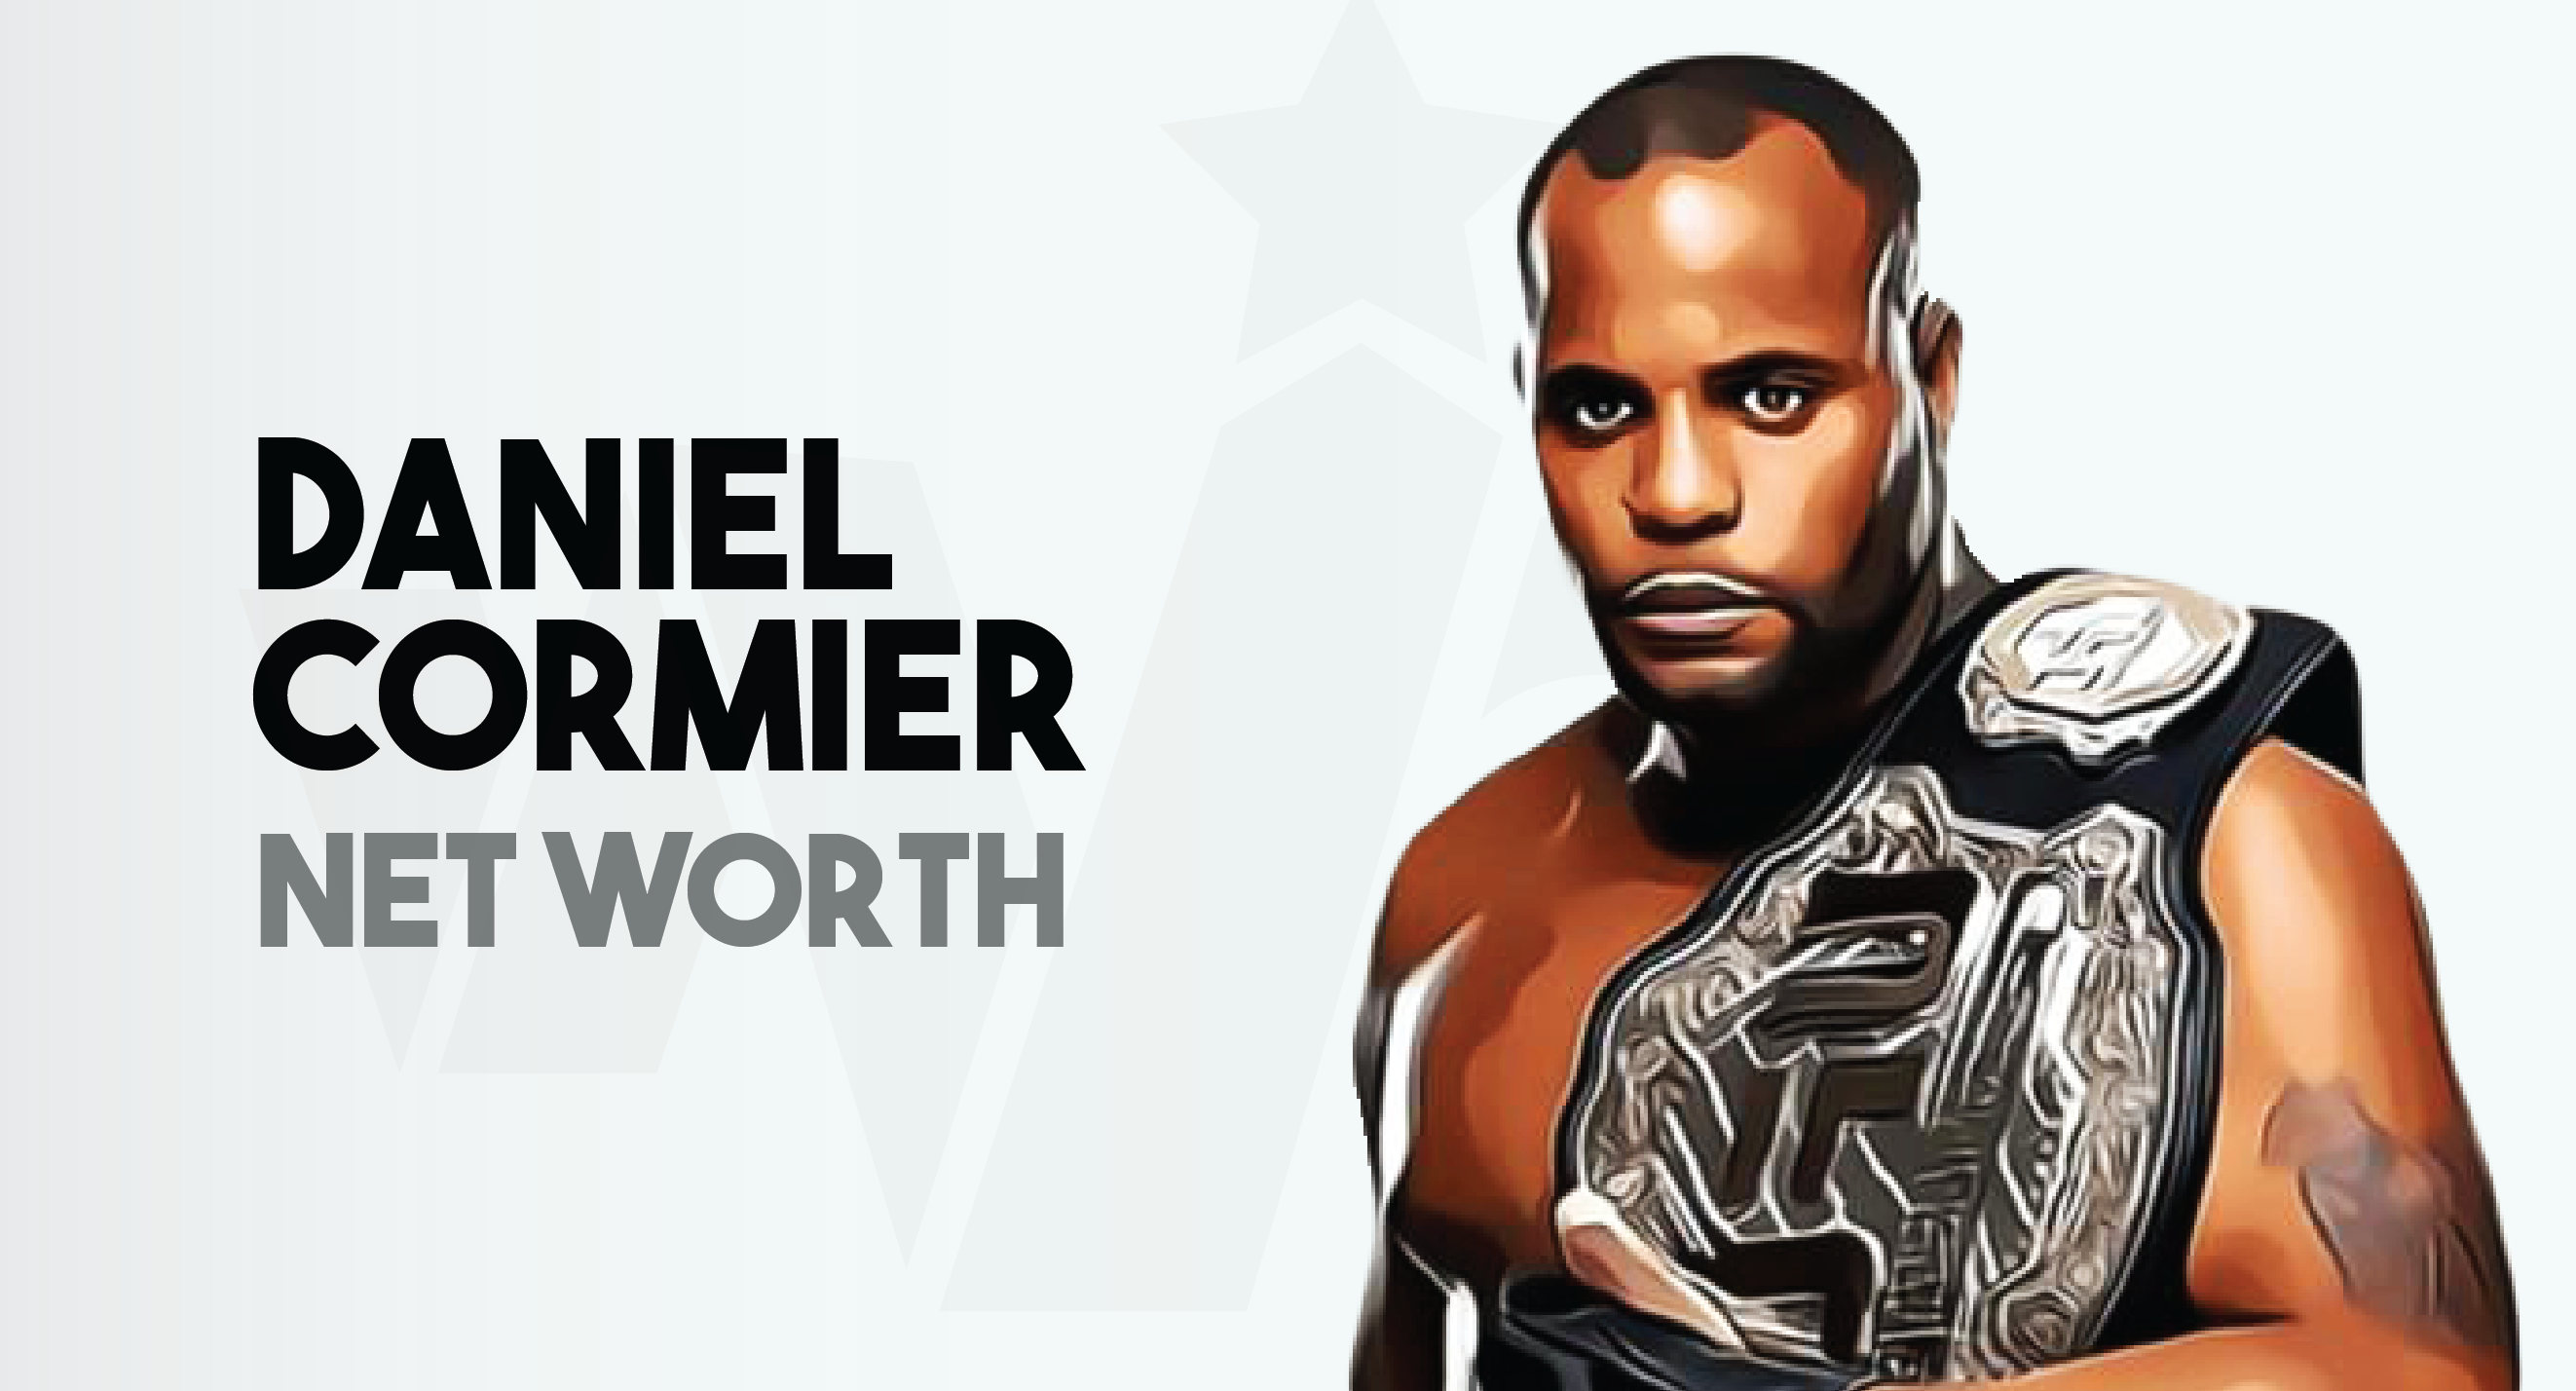 Daniel Cormier_Net Worth